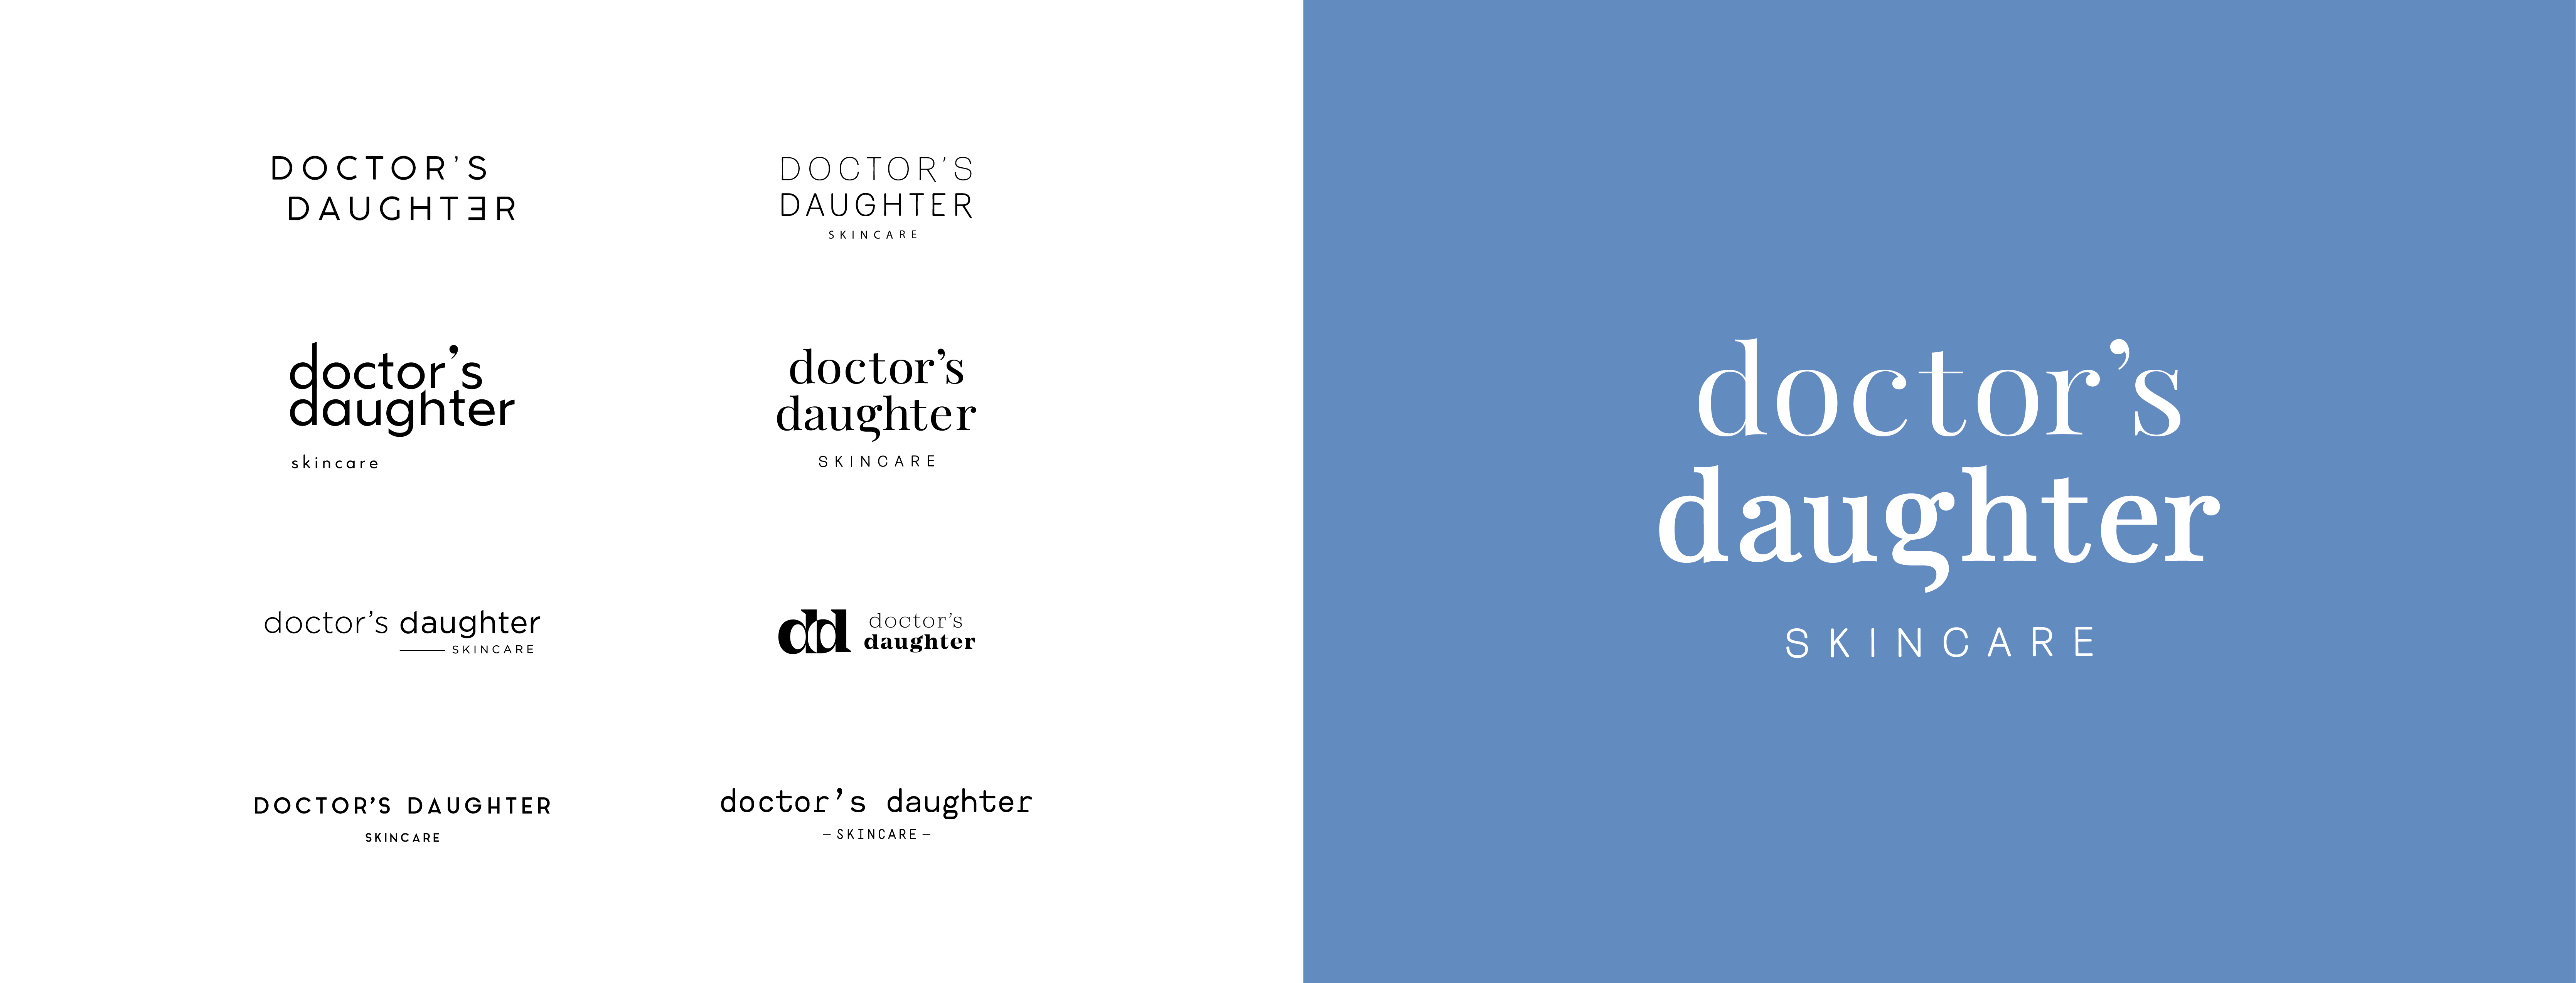 Doctor's Daughter - The Brand Collective 7